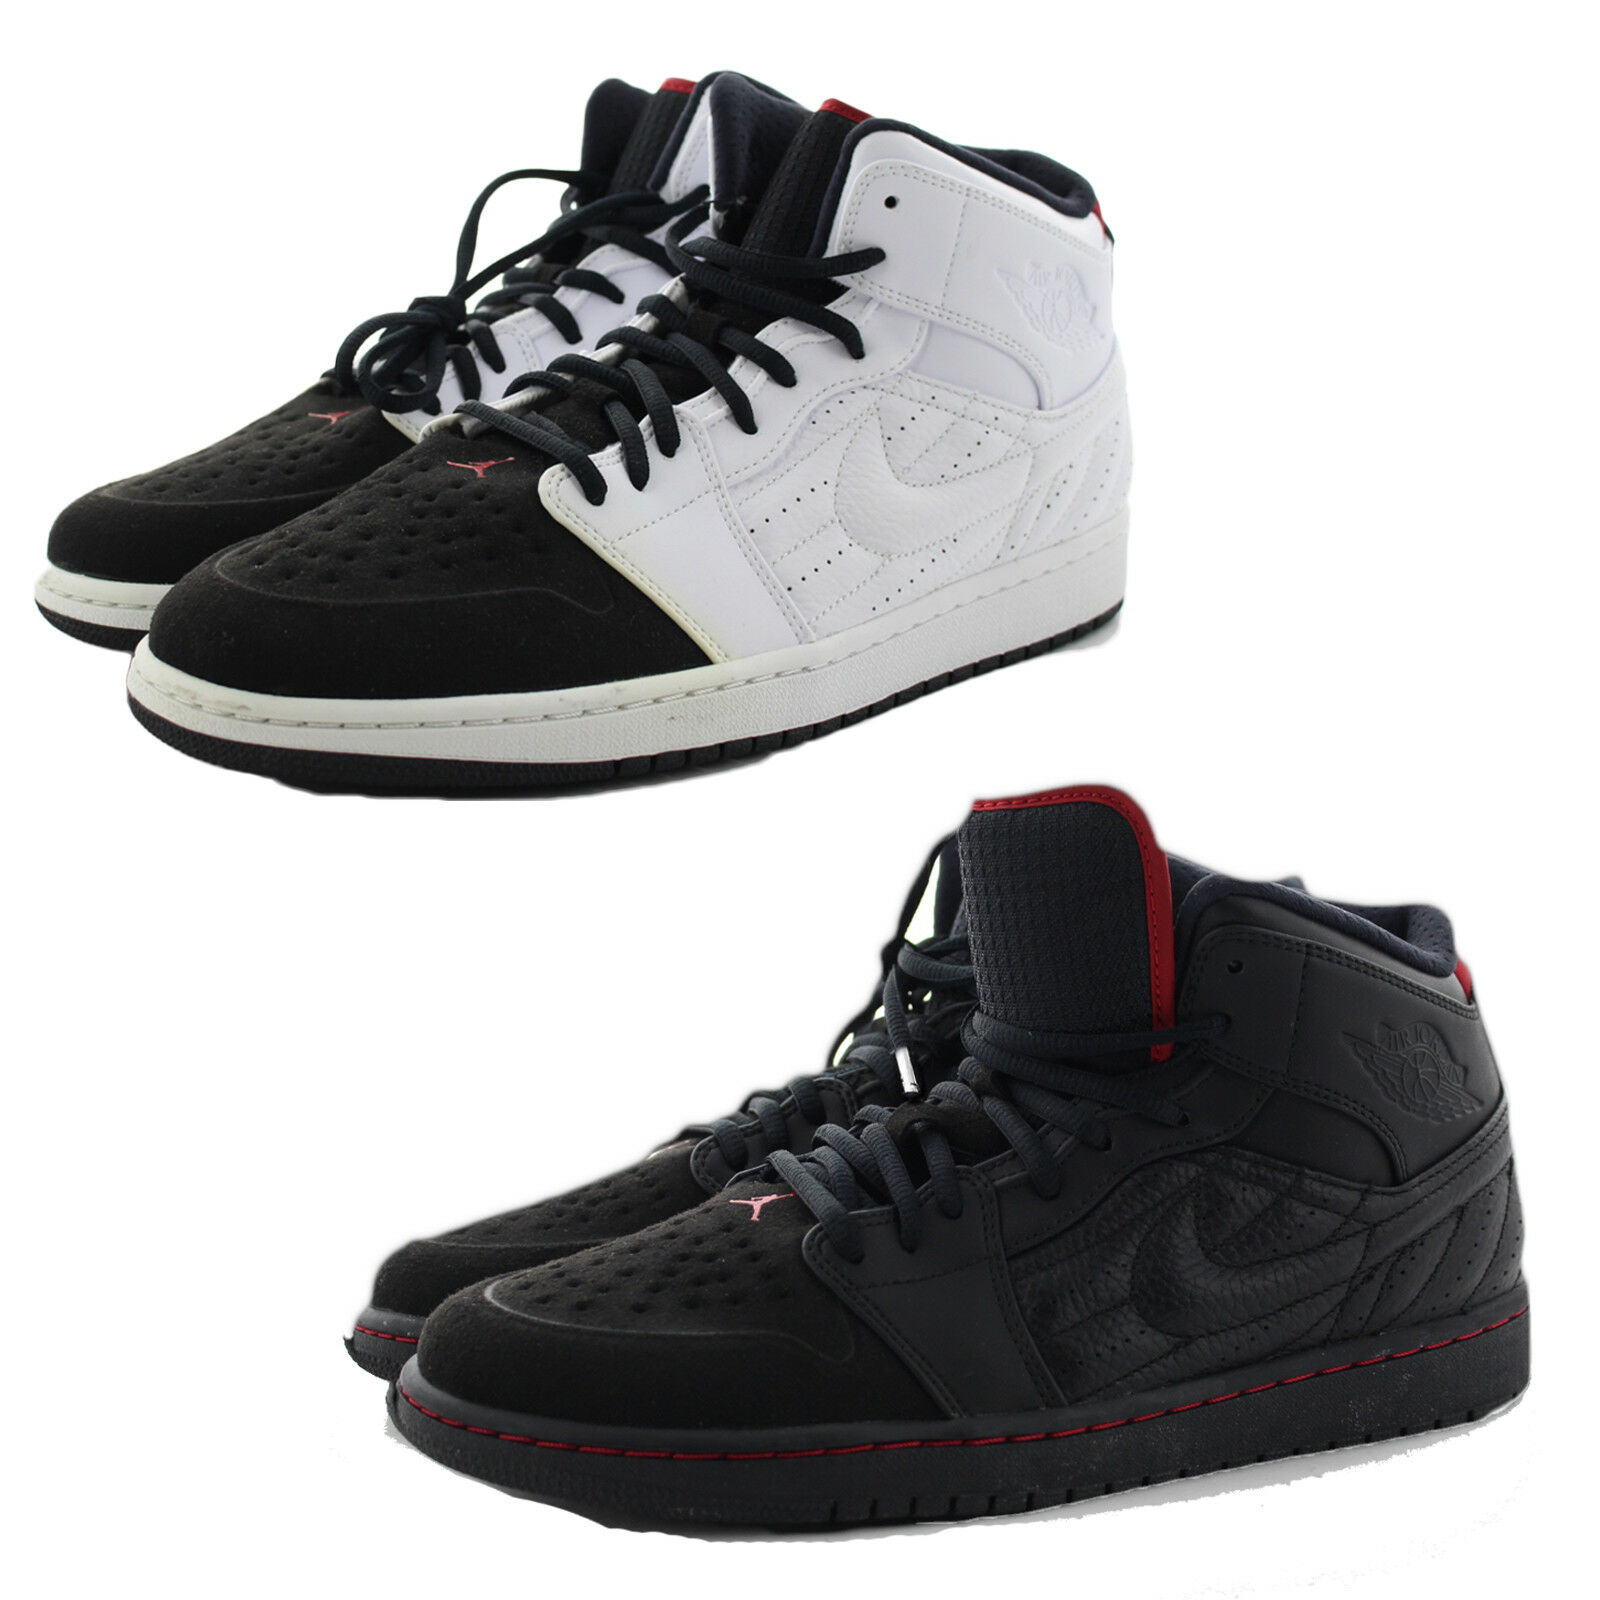 a91cf31468a Nike Air Jordan 1 Retro  99 Mens 654140-101 White Black Basketball Shoes  Size 12 for sale online